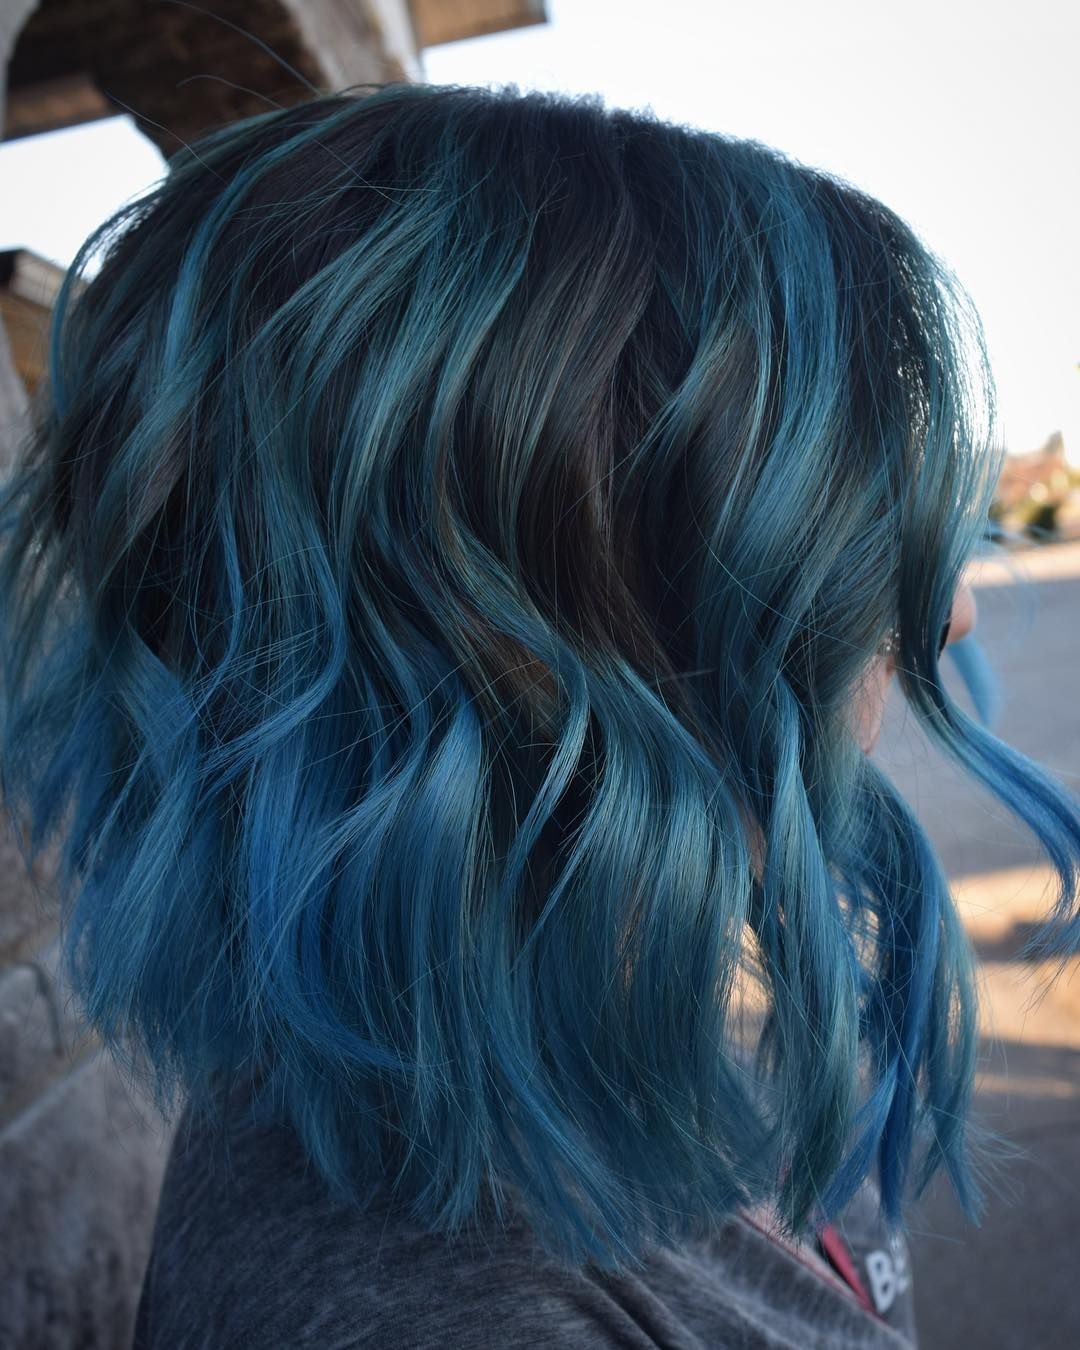 Pin By Emxly On Things Are Getting Hairy Hair Dye Tips Dyed